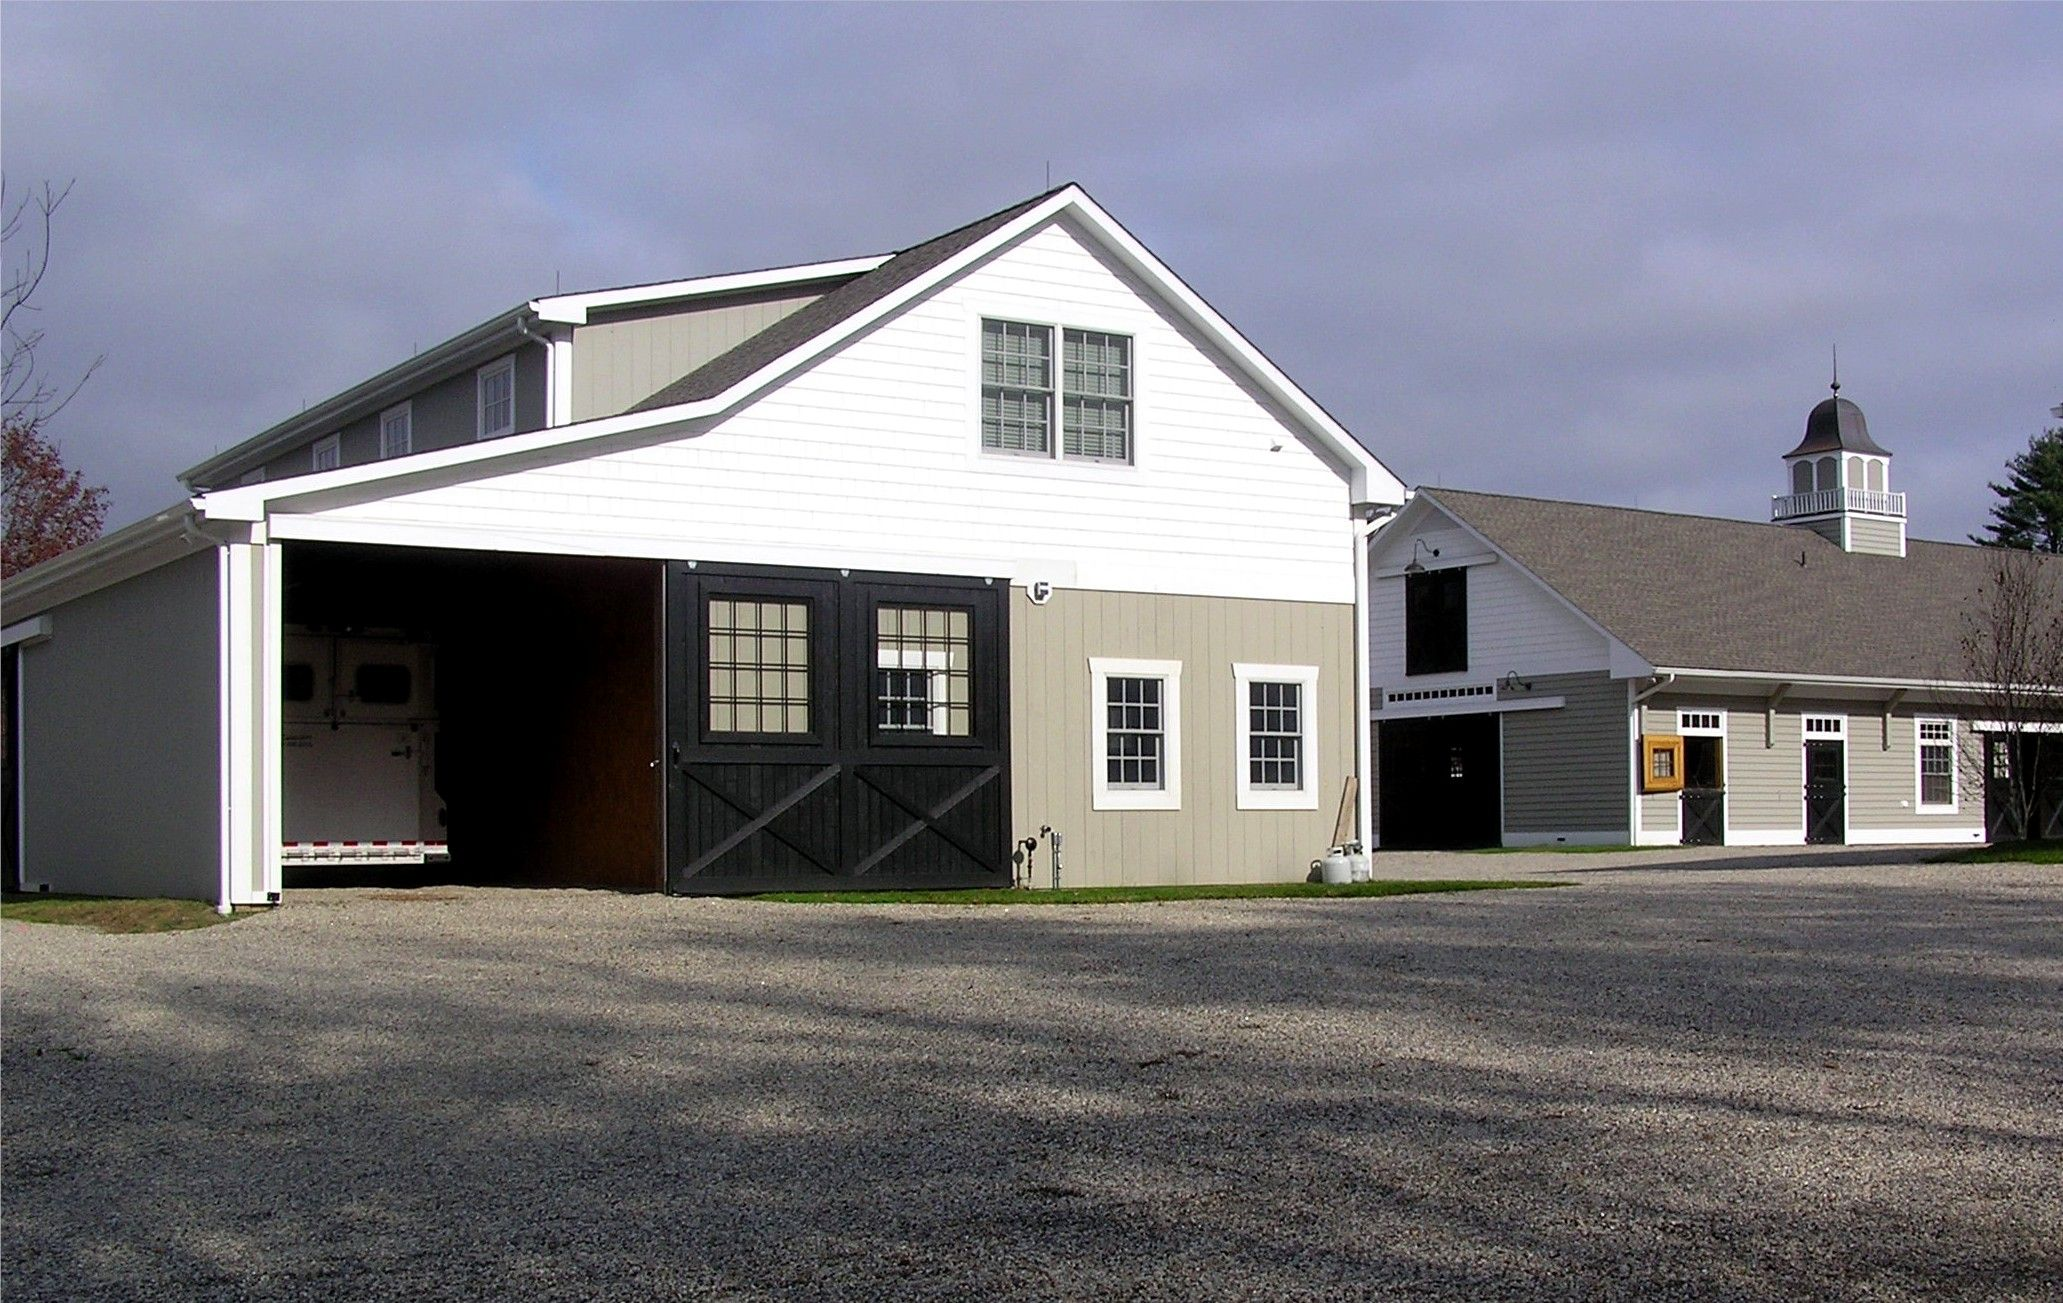 Garages With Trailer Storage By Kingbarns Com Barn Builders Garages Architecture